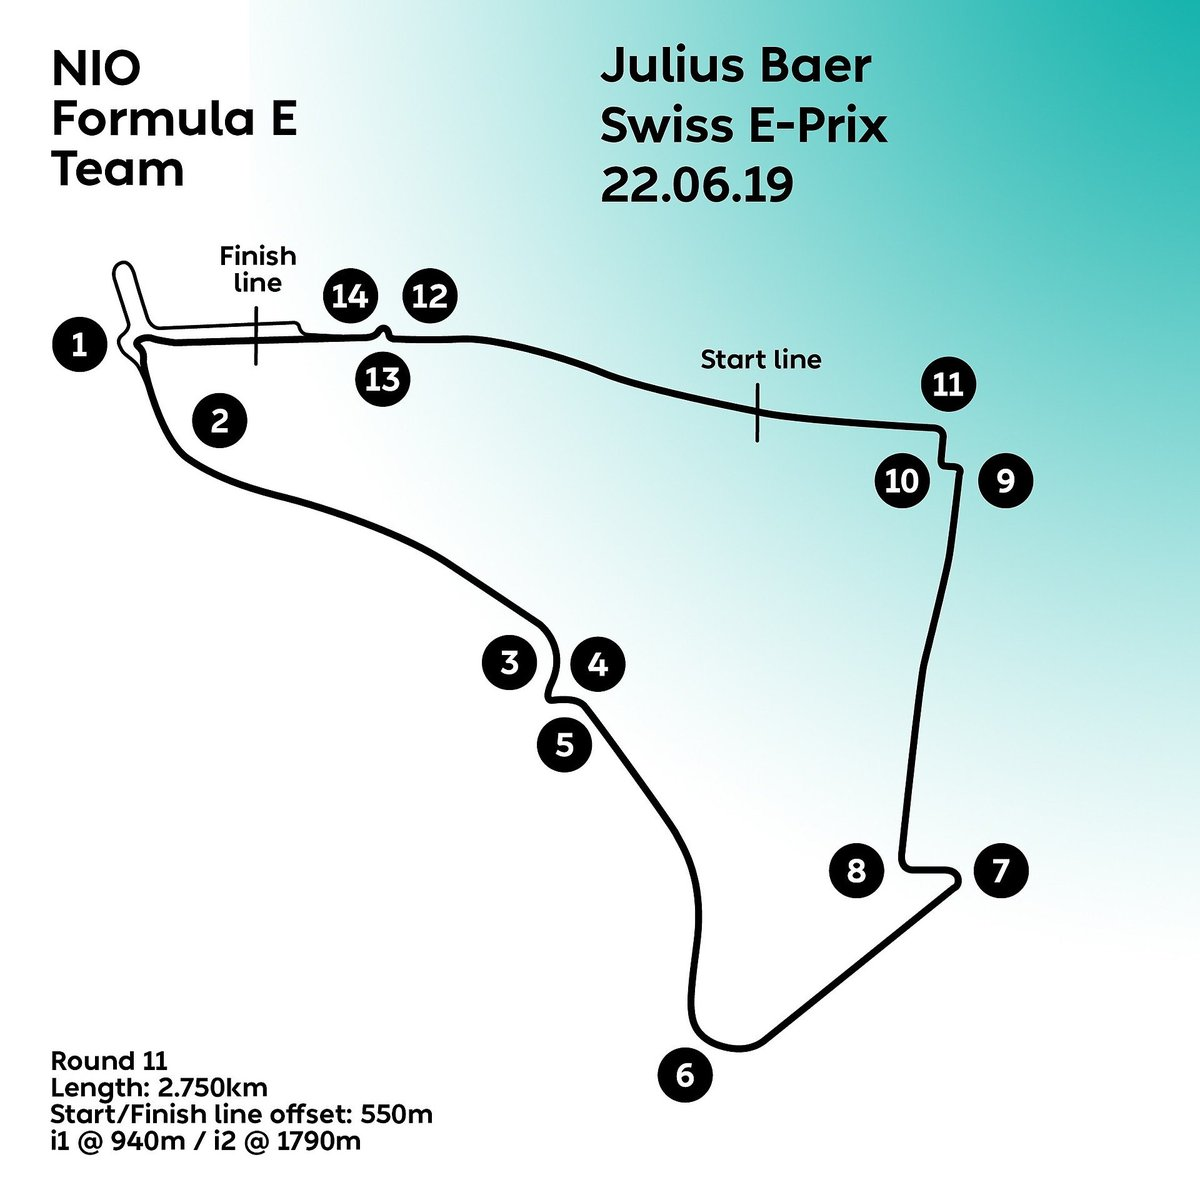 On Saturday our drivers will be racing around the the old city centre of Bern, a World UNESCO Heritage site. So Formula E fans... is this our first time competing on a UNESCO site?  #NIOFormulaE #BornToPushLimits #ABBFormulaE #AcronisRacing #BernEPrix #SwissEPrix #Circuit #UNESCO